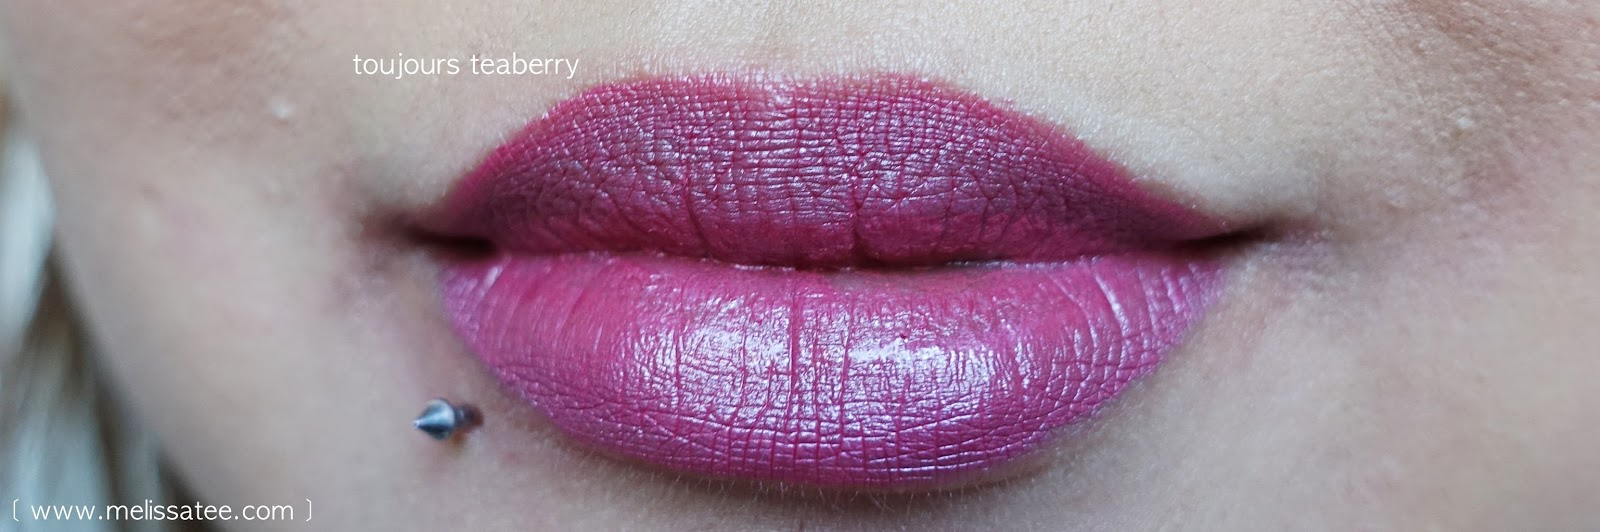 l'oreal infallible, l'oreal lipsticks, l'oreal infallible lip colour, toujours teaberry, l'oreal lipstick swatch, toujours teaberry swatch